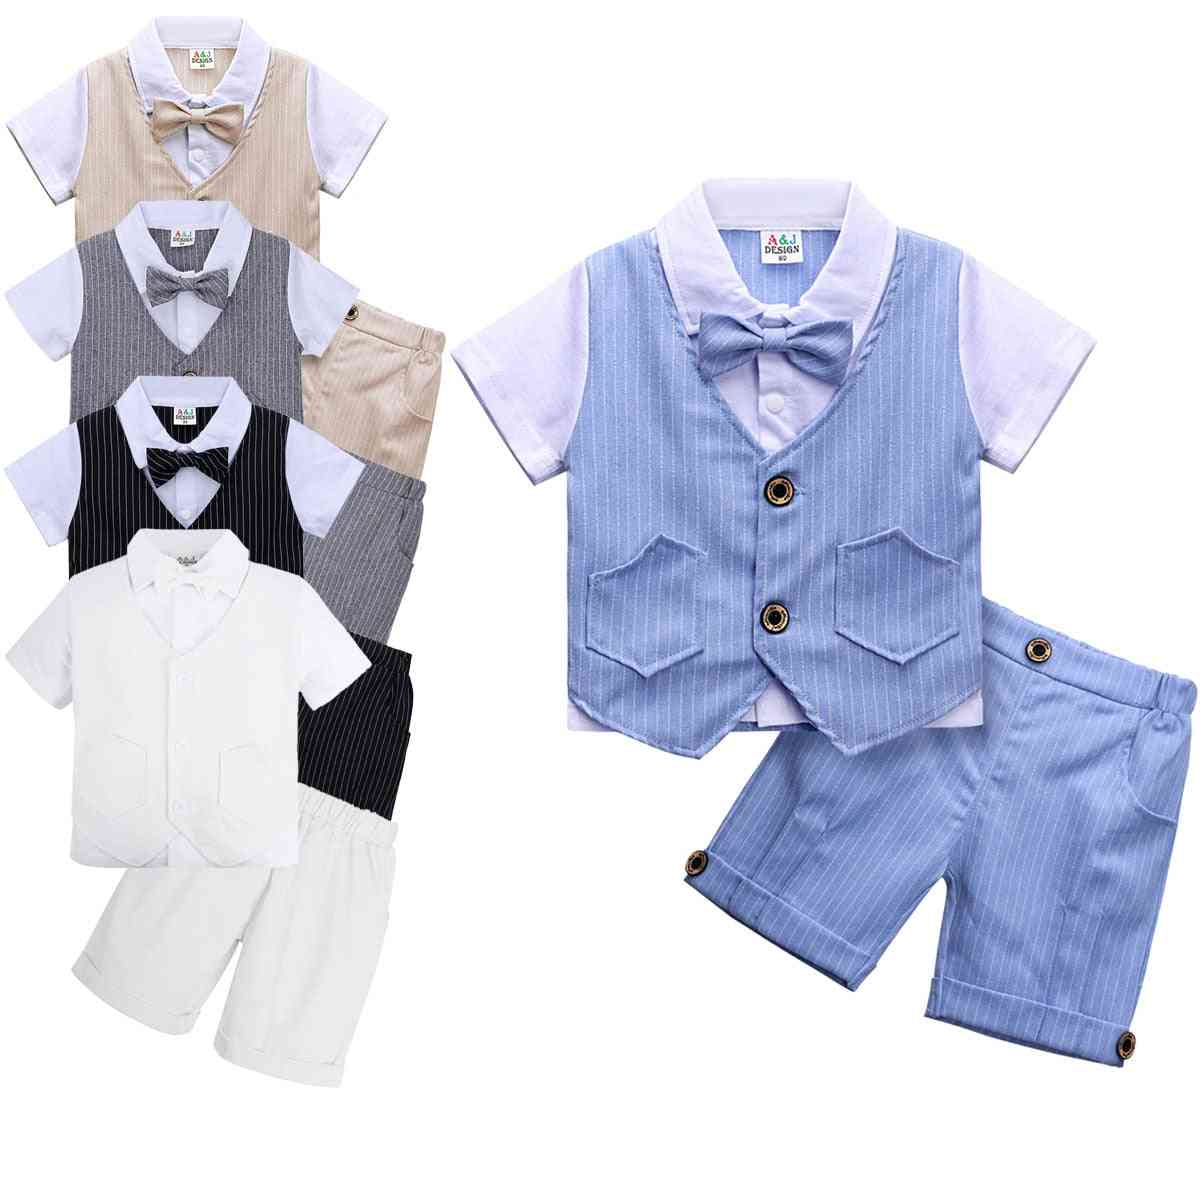 Baby Clothing Set Infant Gentleman Outfit Top